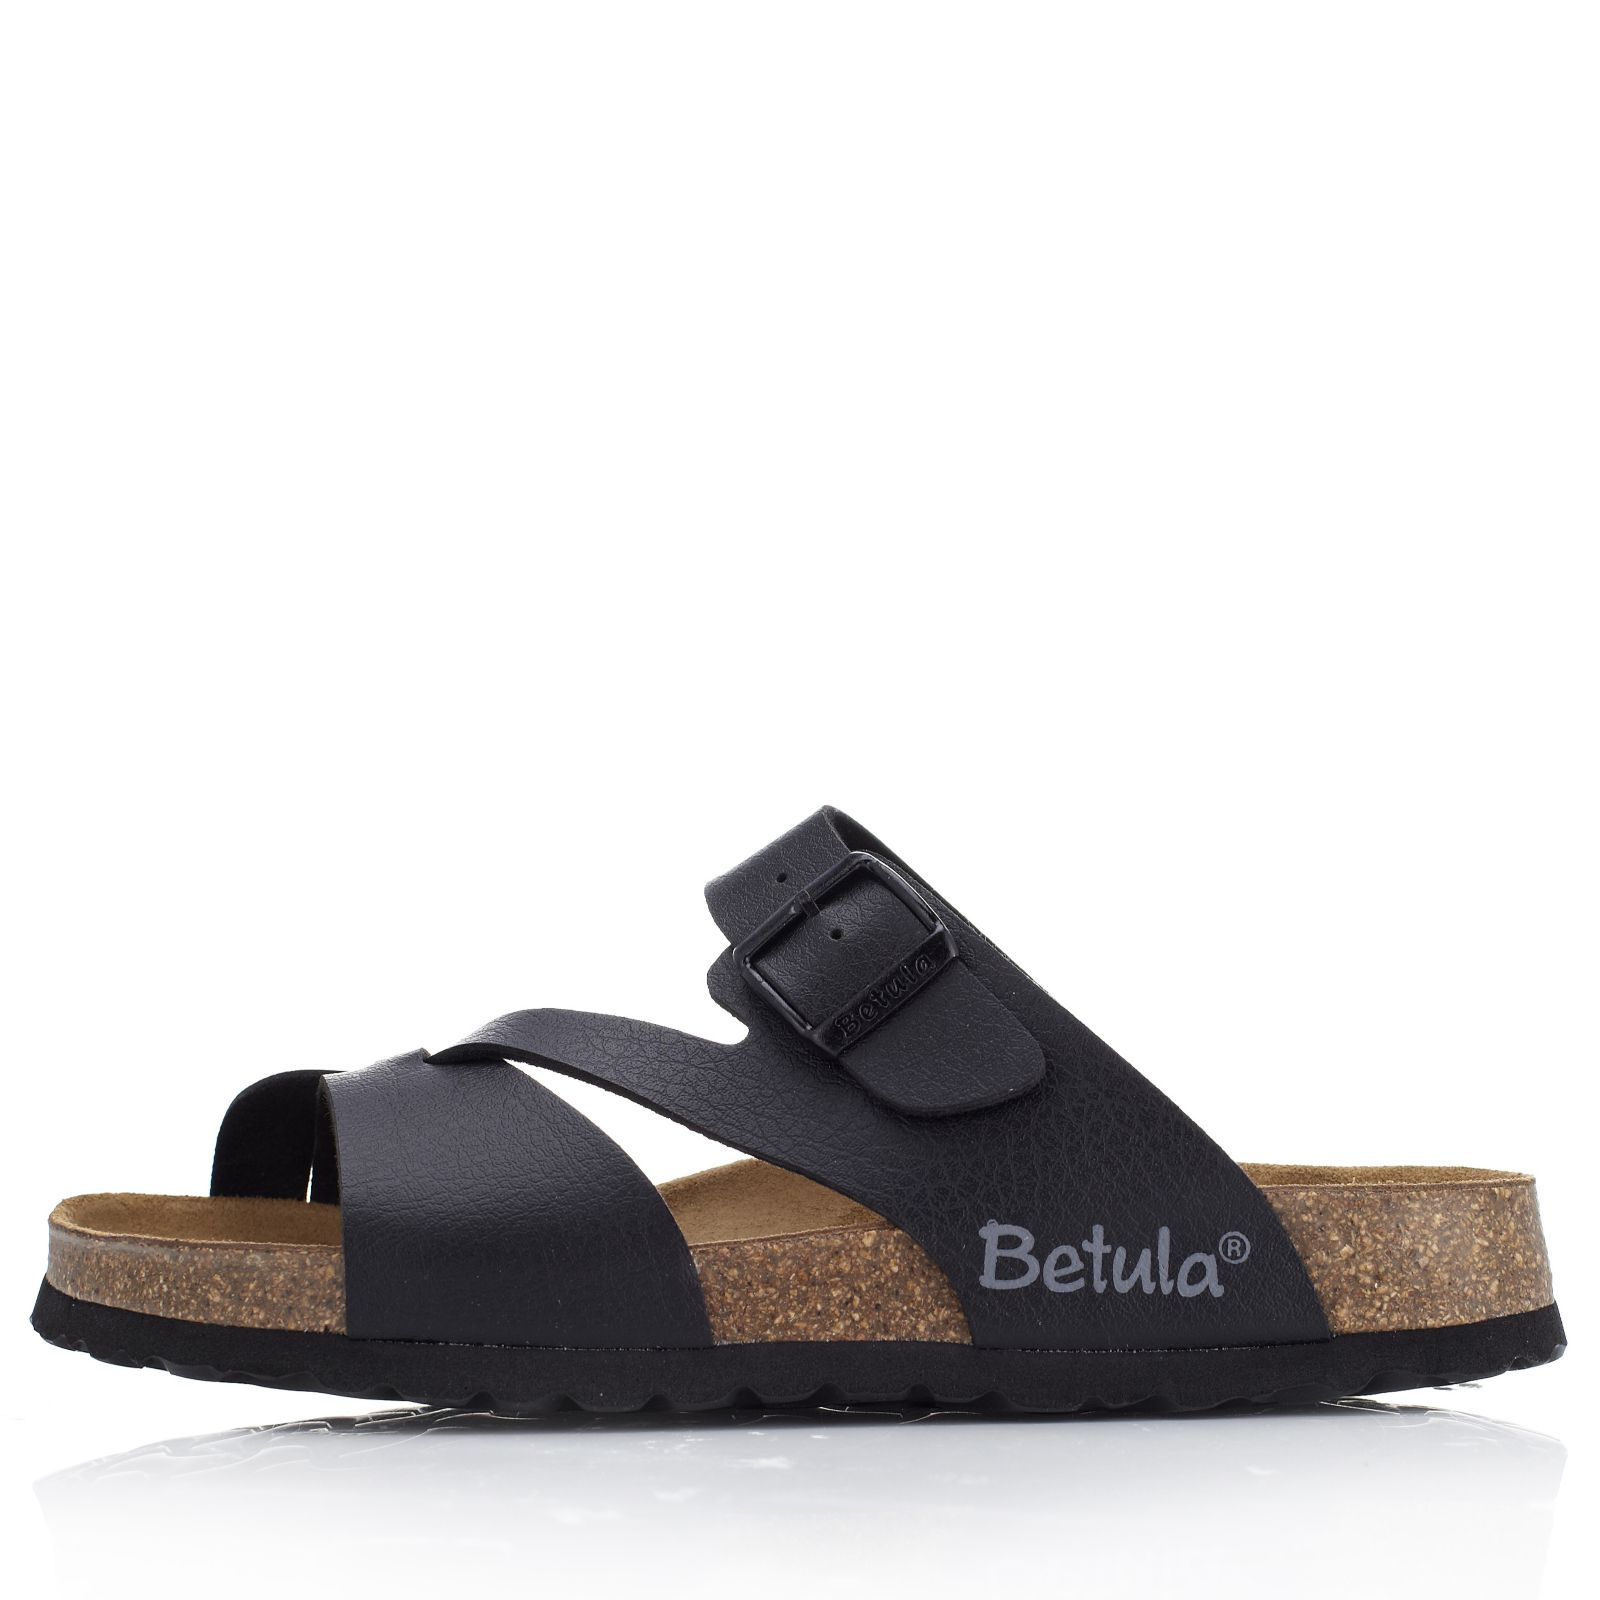 91b130d0813cf Betula by Birkenstock Carna Crackle Effect Sandal - Page 1 - QVC UK